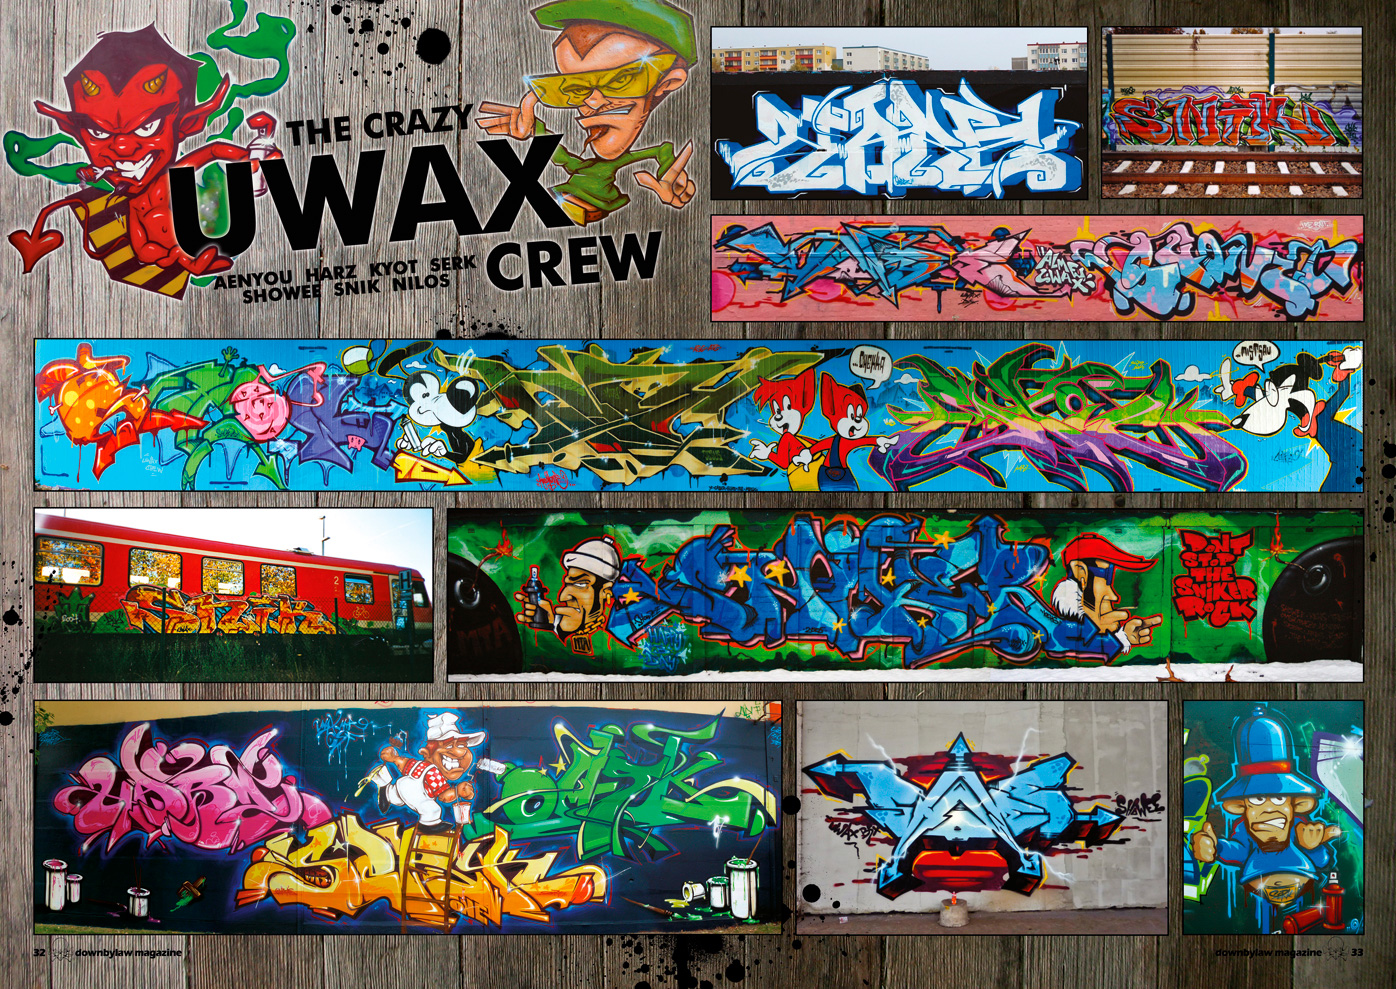 downbylaw_magazine_7_uwax_crew_graffiti